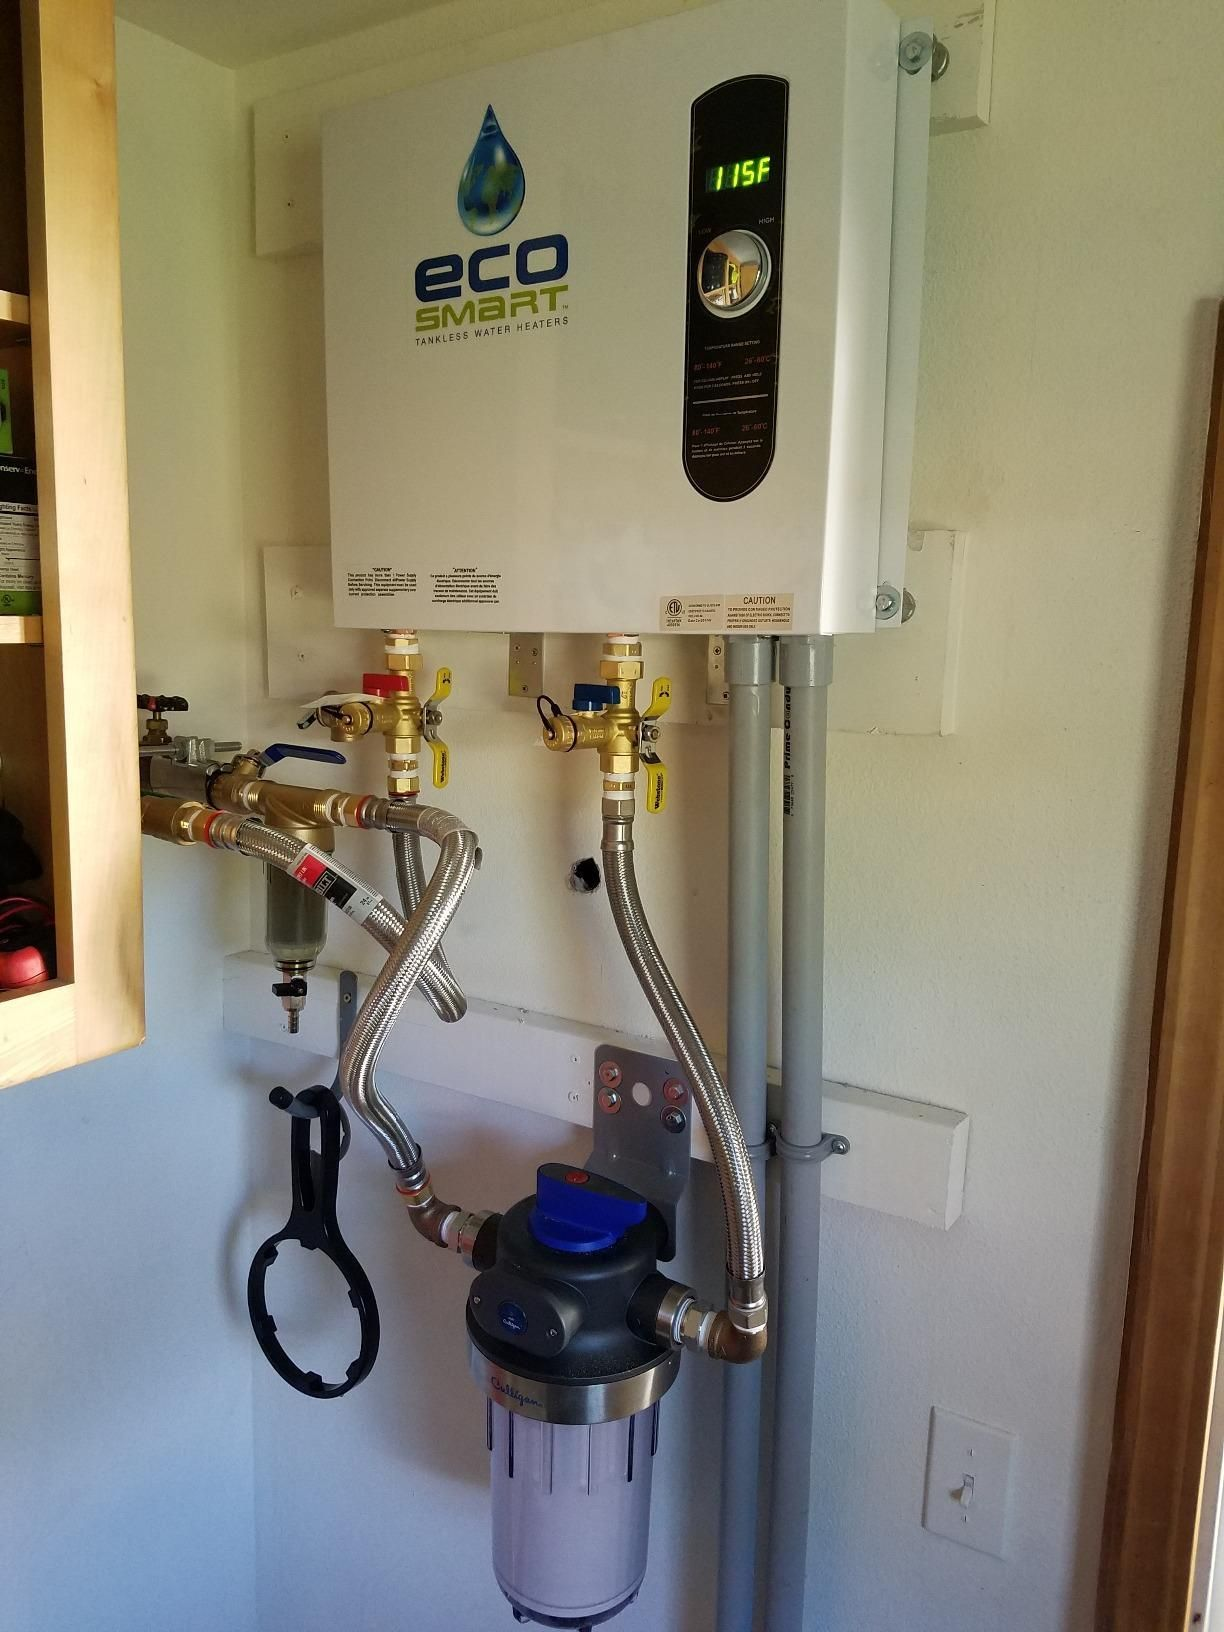 hight resolution of save money ecosmart tankless water heaters only turn on when you need hot water plus they cut down on heat loss saving you up to 50 in water heating